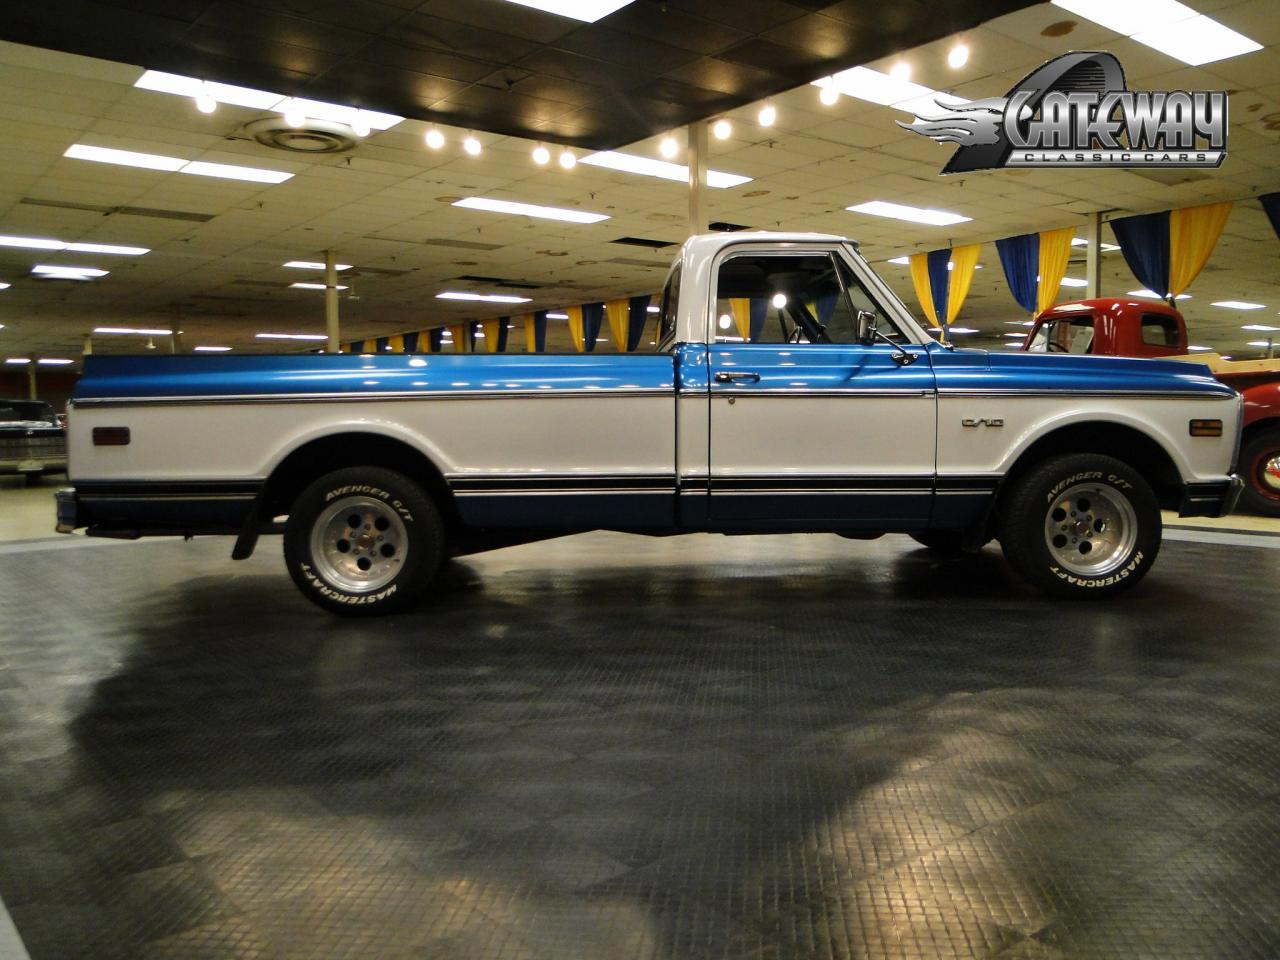 All Chevy 1969 chevy c10 for sale : 1969 Chevrolet C10 | Gateway Classic Cars | 5268